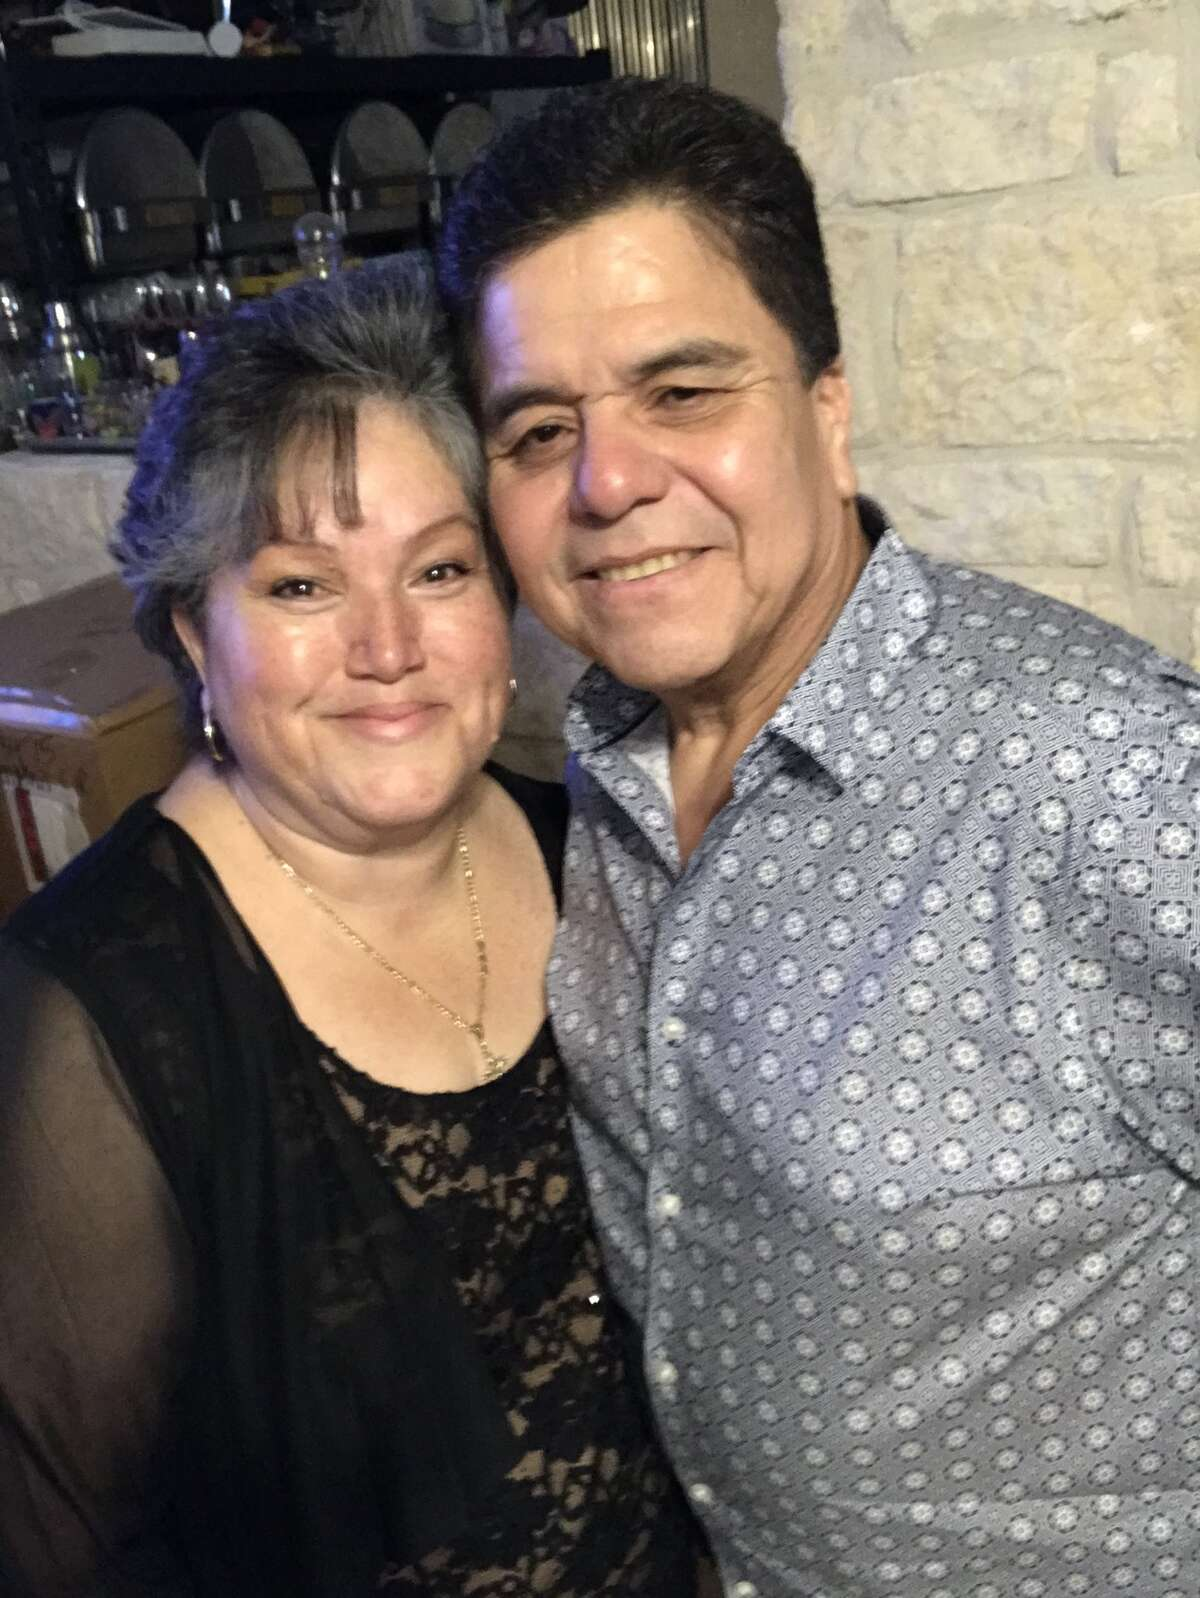 """""""My parents, Oscar and Yolanda Fuentes, met during Fiesta. My dad was in a band and my mom went to go hire them for my aunt and uncle's wedding. Nine months later they got married and they just celebrated 29 years of marriage on Feb. 1. Every Fiesta, they go to the spot where they met."""" - Asenette Fuentes"""